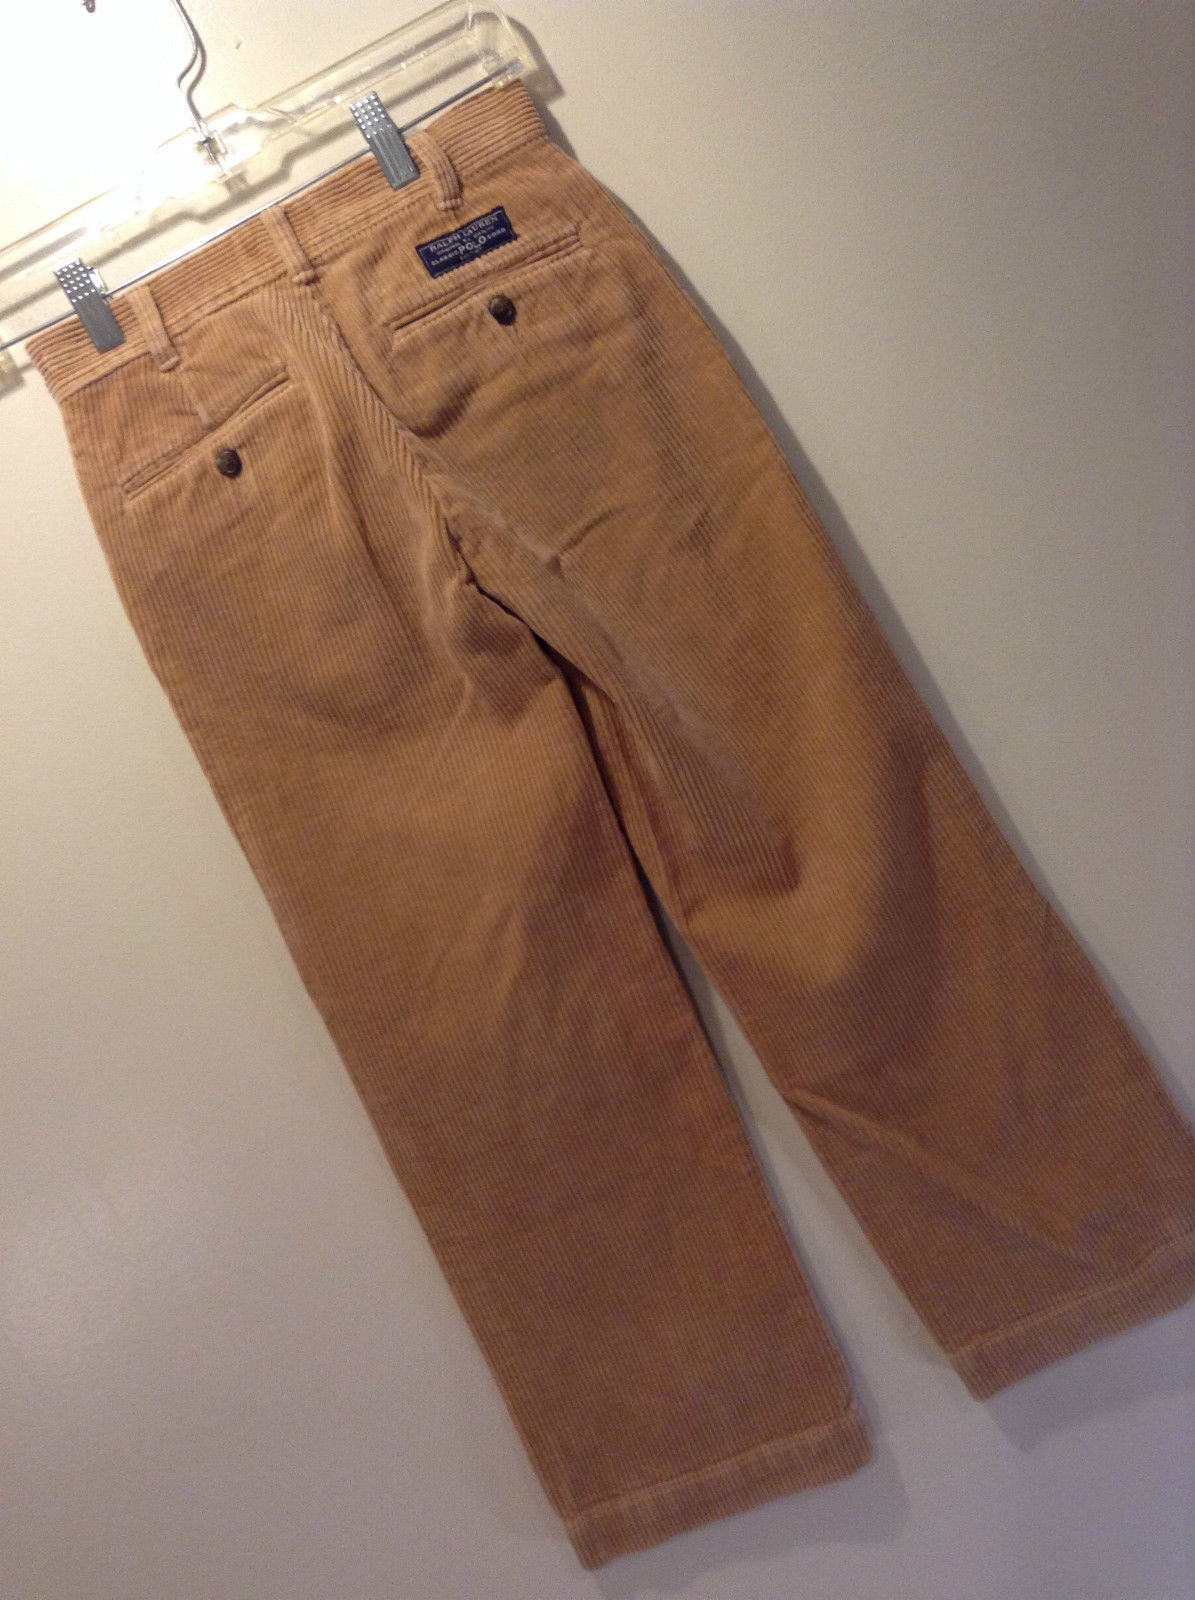 Size 10 Brown Corduroy Casual Pants Polo by Ralph Lauren Alex Day